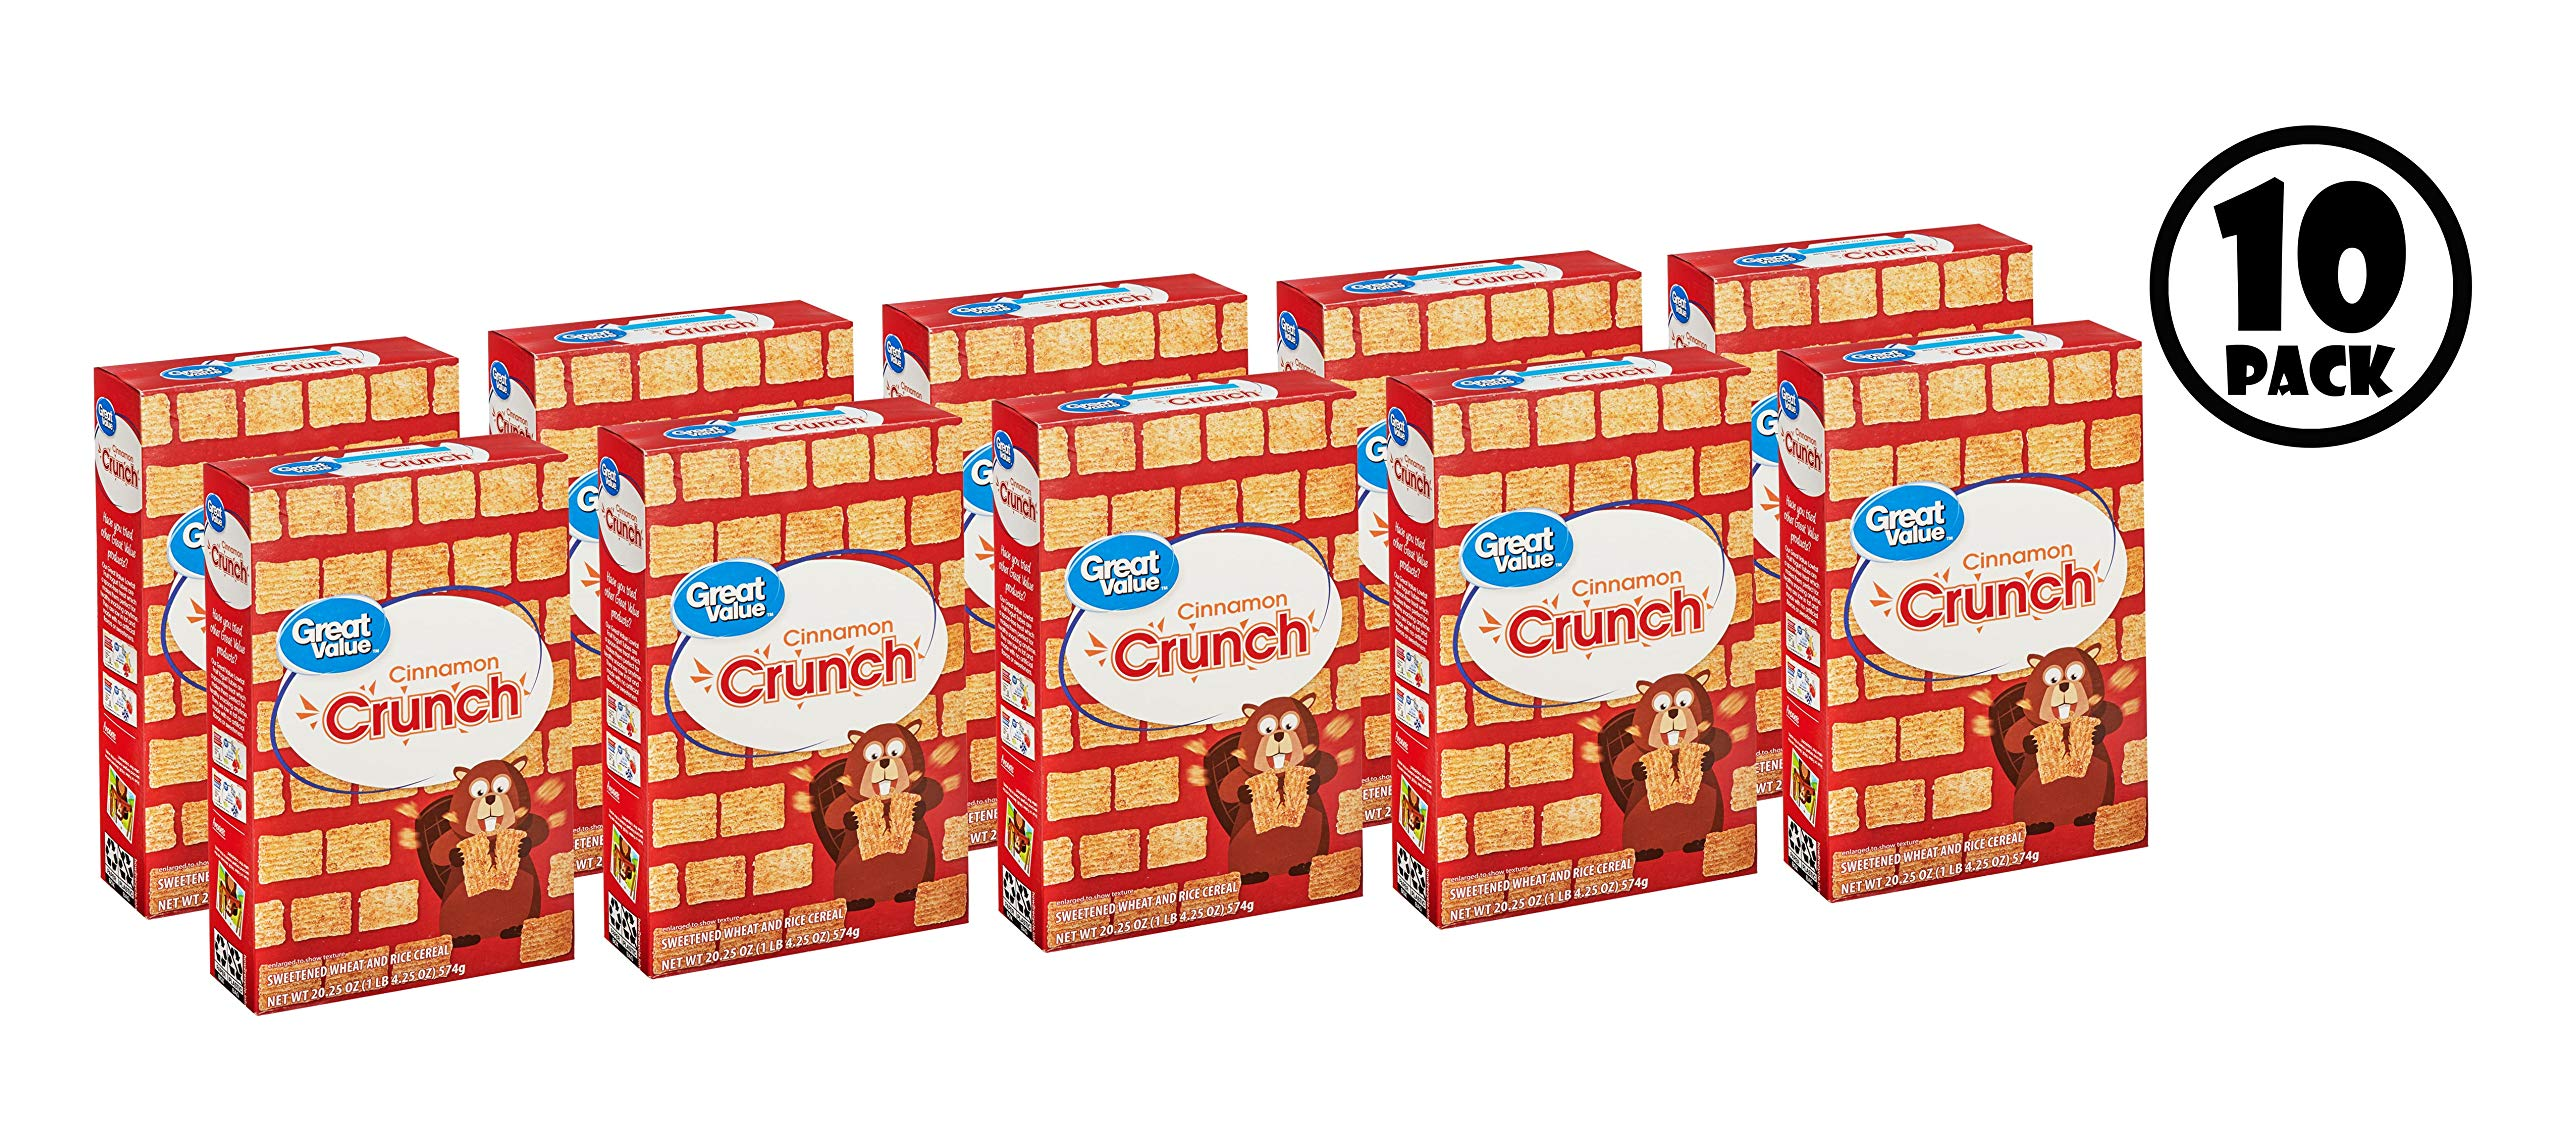 (10 Pack) Great Value Cinnamon Crunch Cereal, 20.25 oz